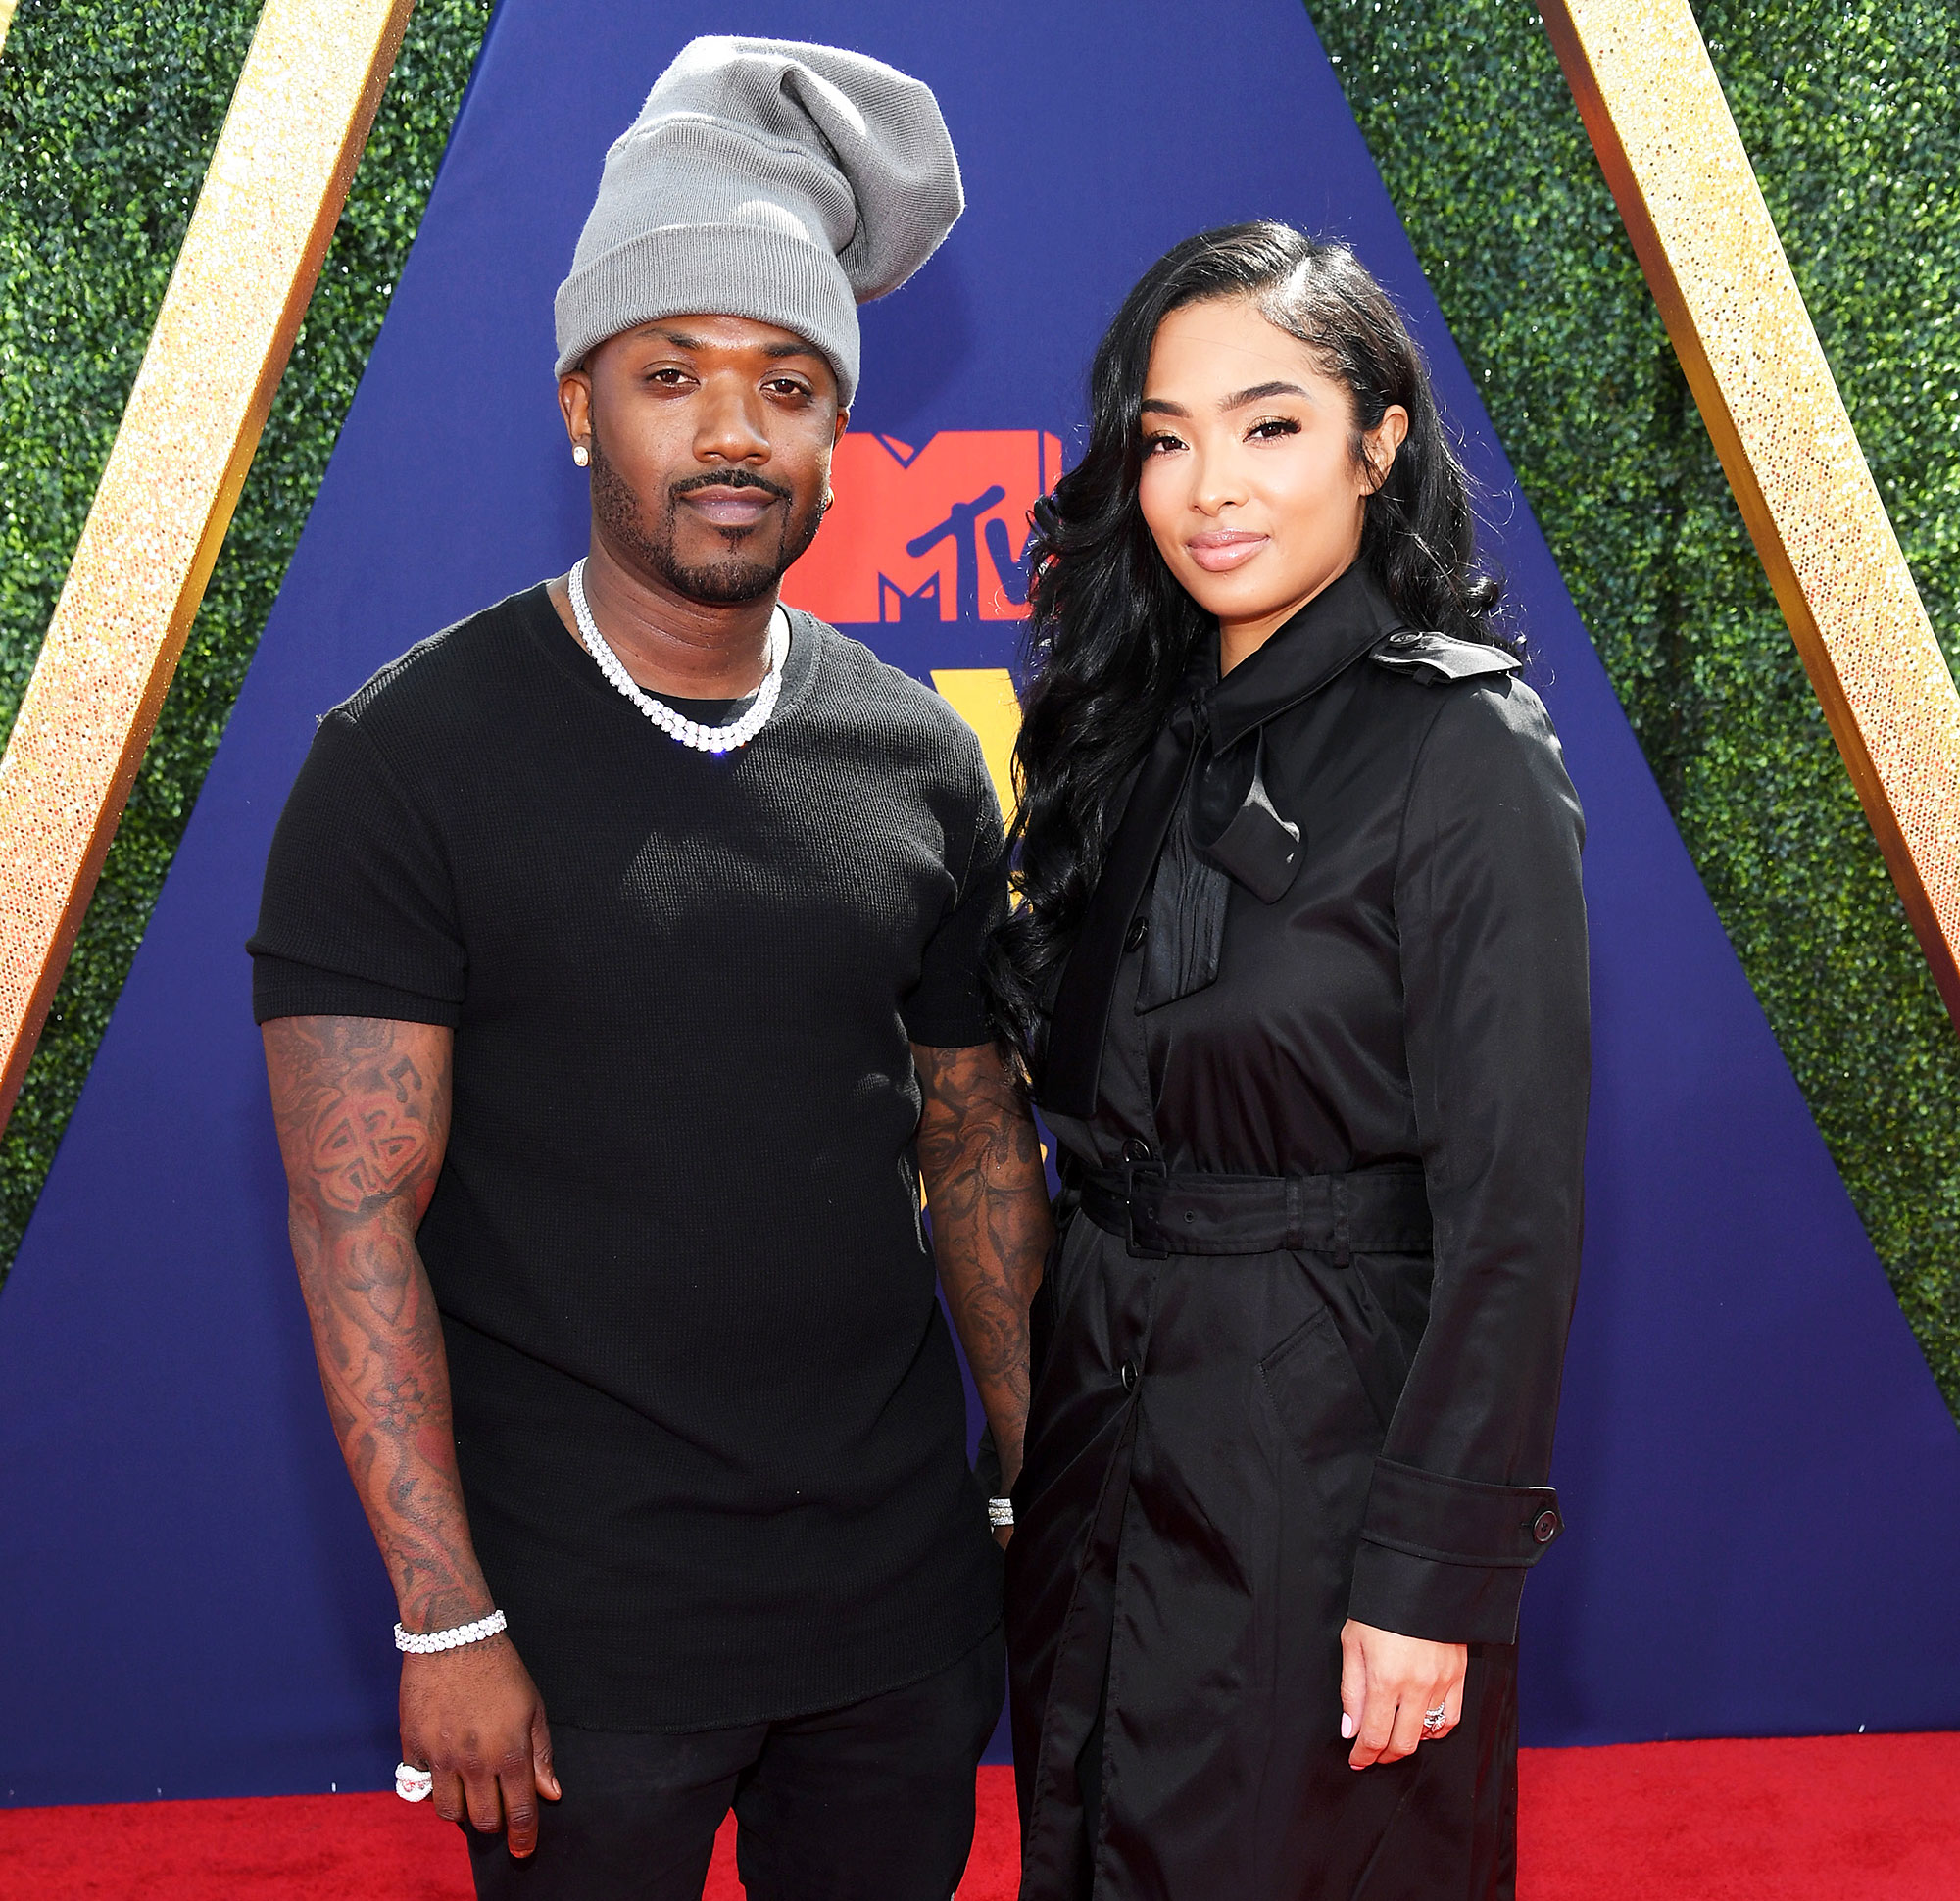 Ray J and Princess Love attend the 2019 MTV Movie and TV Awards Kim Kardashian Sex Tape Joke